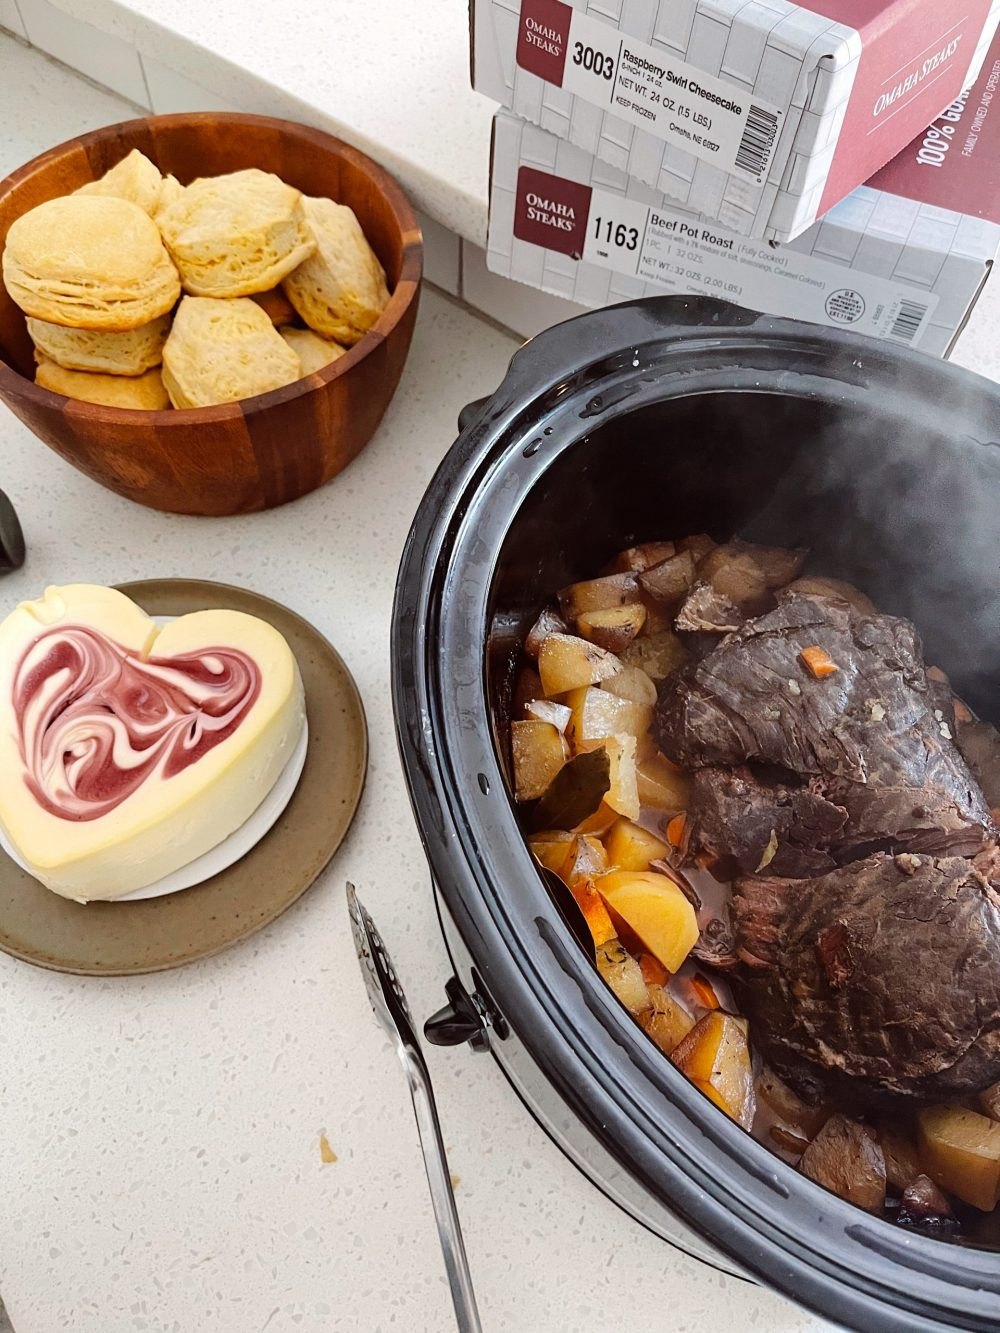 Omaha Steaks Meals featured by top FL lifestyle blogger, Tabitha Blue of Fresh Mommy Blog. - Pot Roast   Omaha Steaks Meals by popular Florida lifestyle blog, Fresh Mommy Blog: image of slow cooker pot roast next to a wooden bowl filled with biscuits and a heart shaped cheese cake.